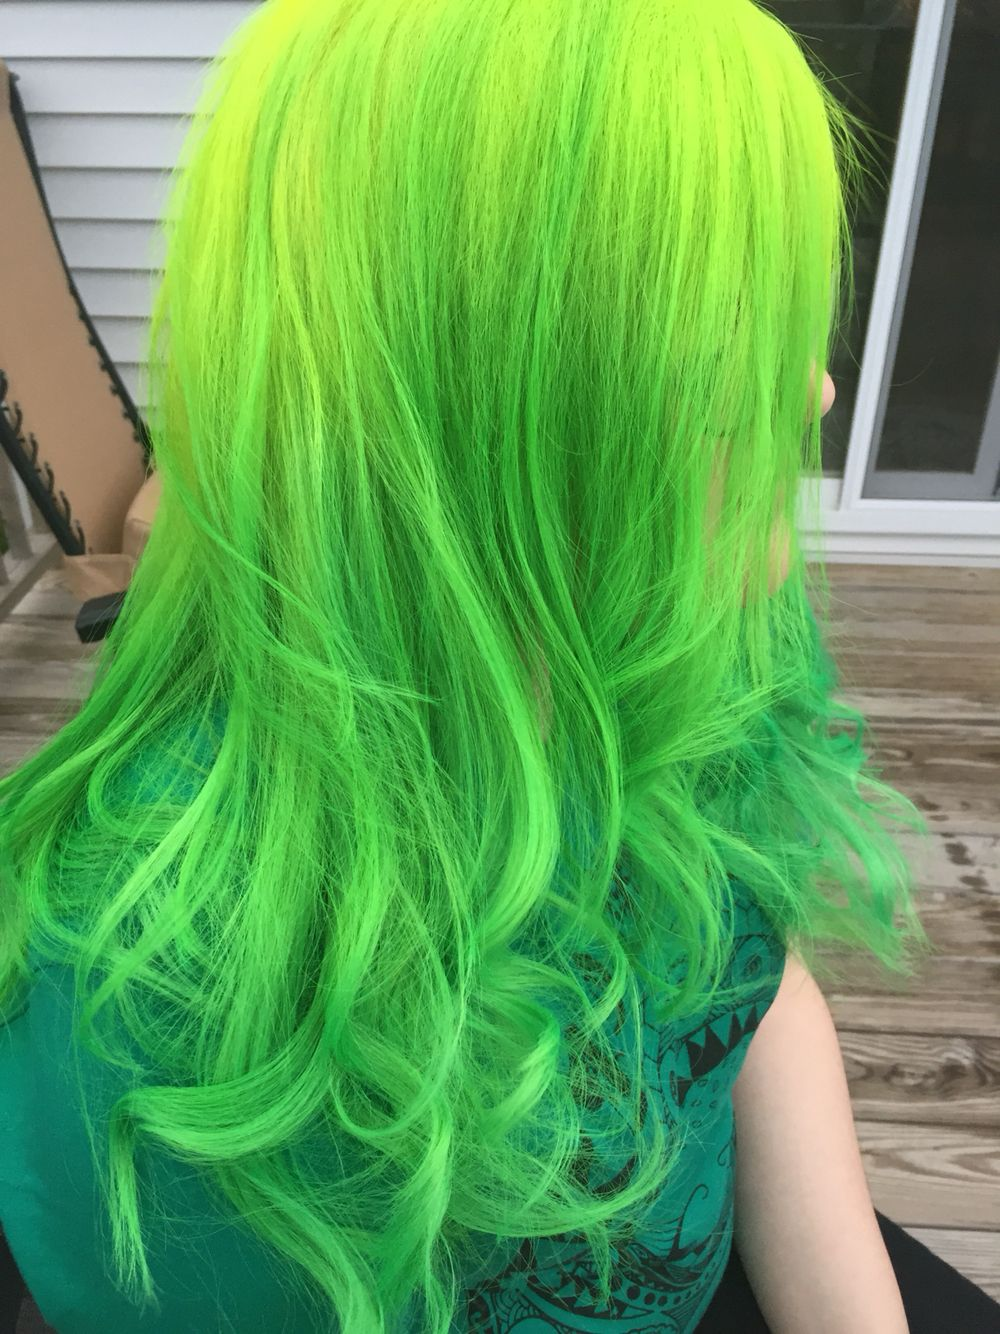 Pravana S Neon Yellow Melted Into Green